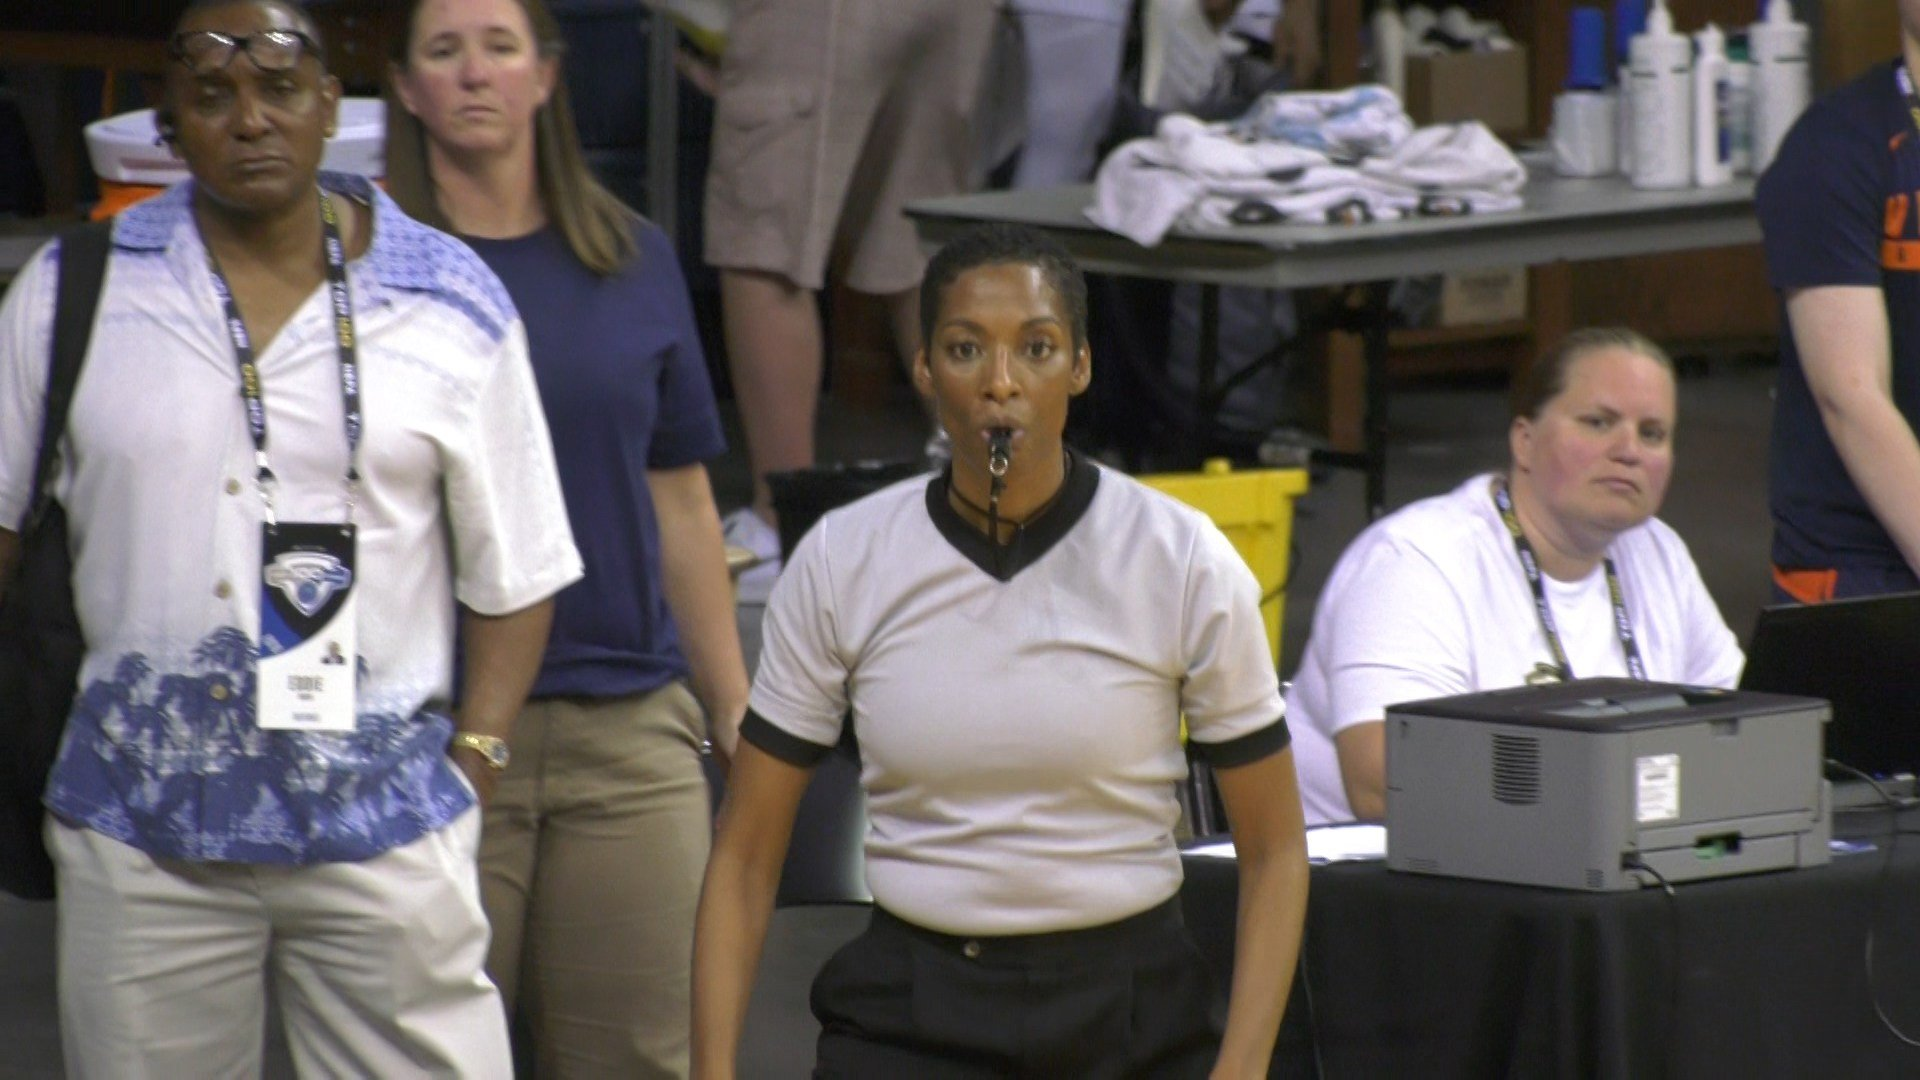 The NBA top 100 camp had females officiating for the first time